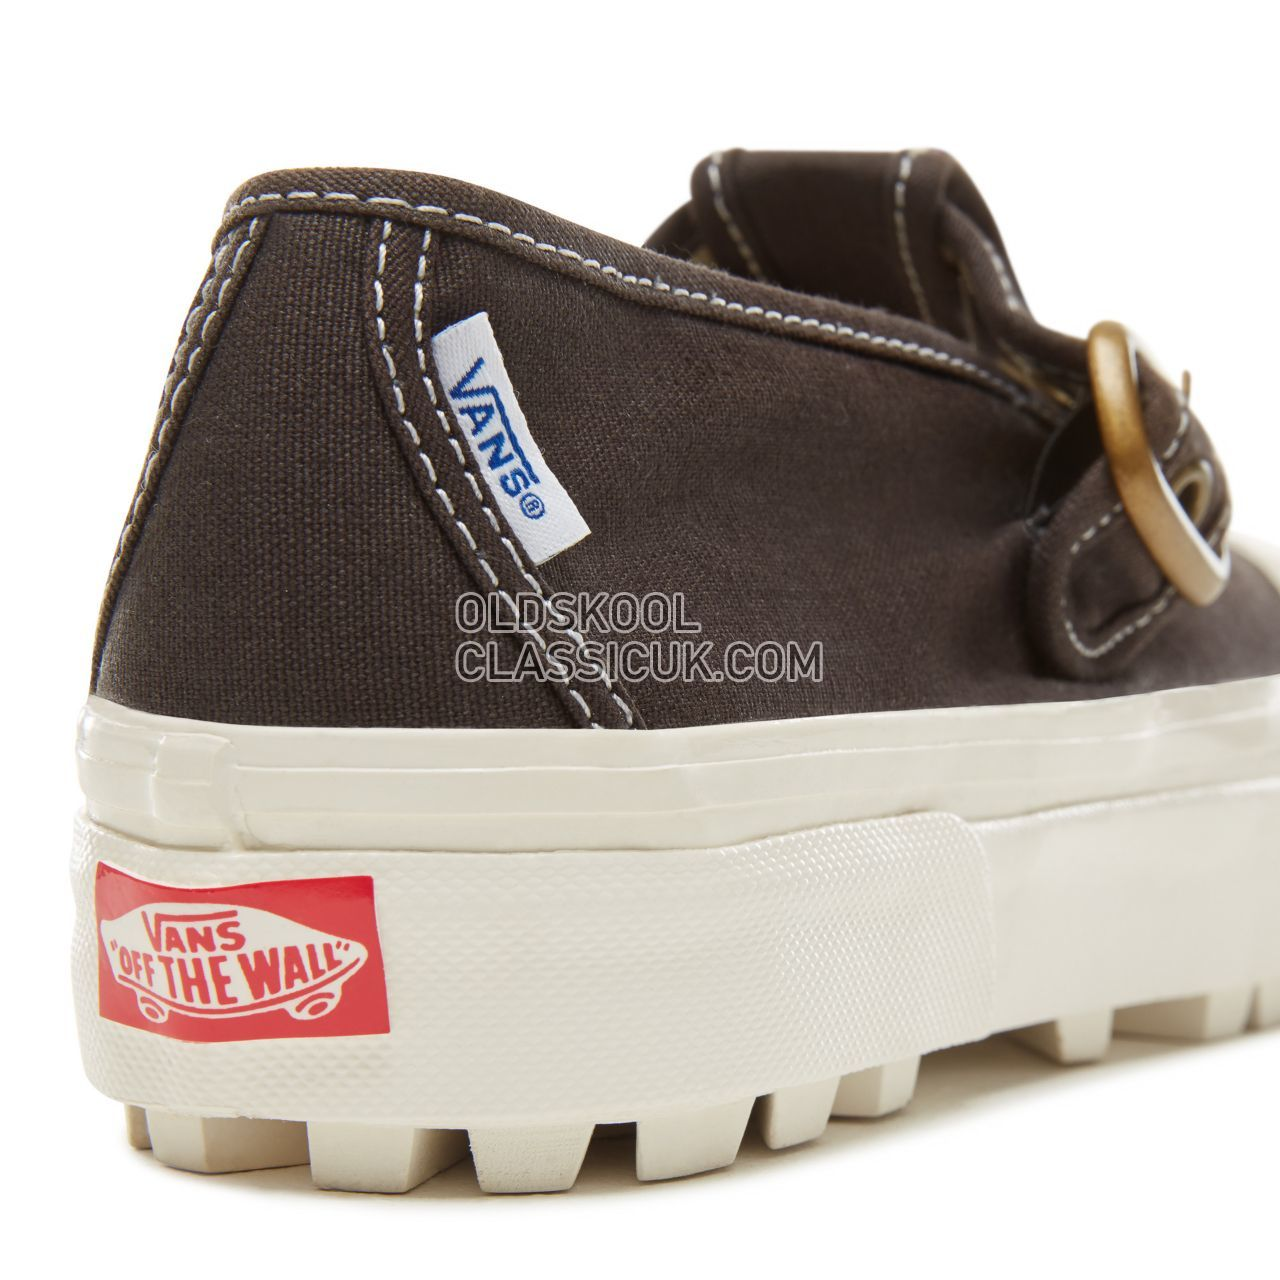 Vans Anaheim Factory Style 93 Sneakers Womens (Anaheim Factory) Og Black VA3TKVUDA Shoes